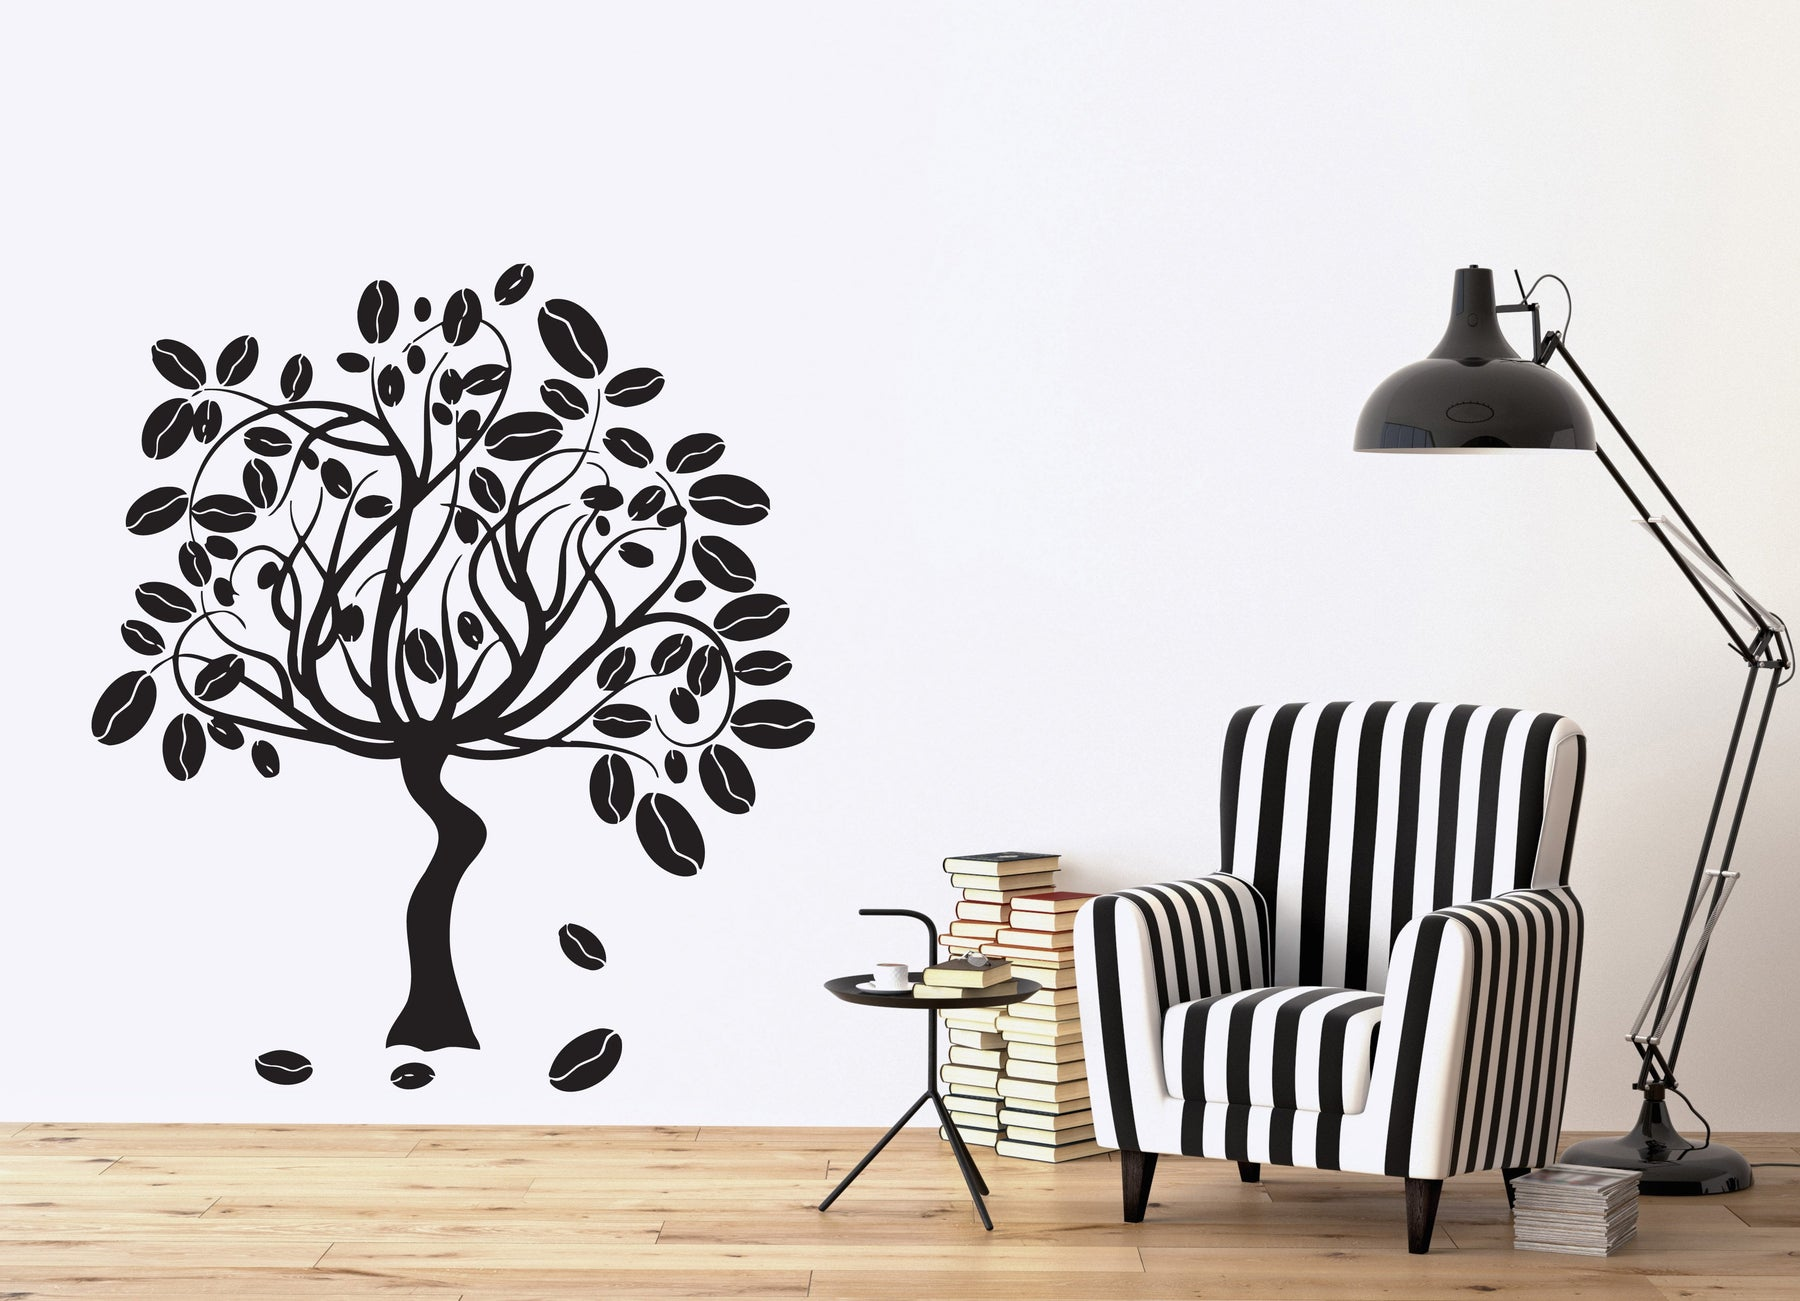 Vinyl Decal Coffee Tree Fruit Ripe Smell the Aroma Wall Sticker Coffee Bar Decor (n595)